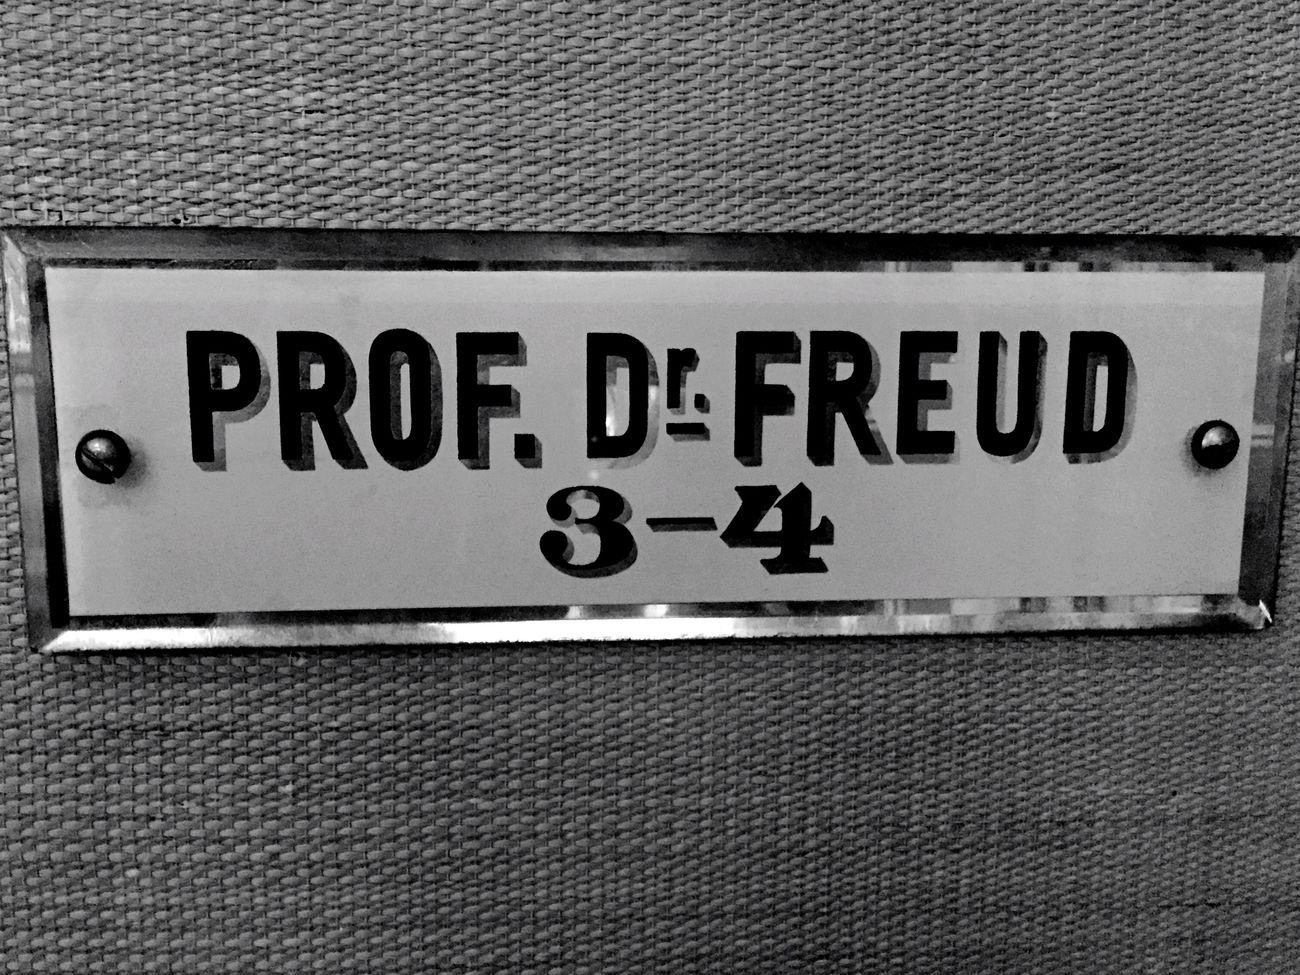 Vienna Freud Door Sign